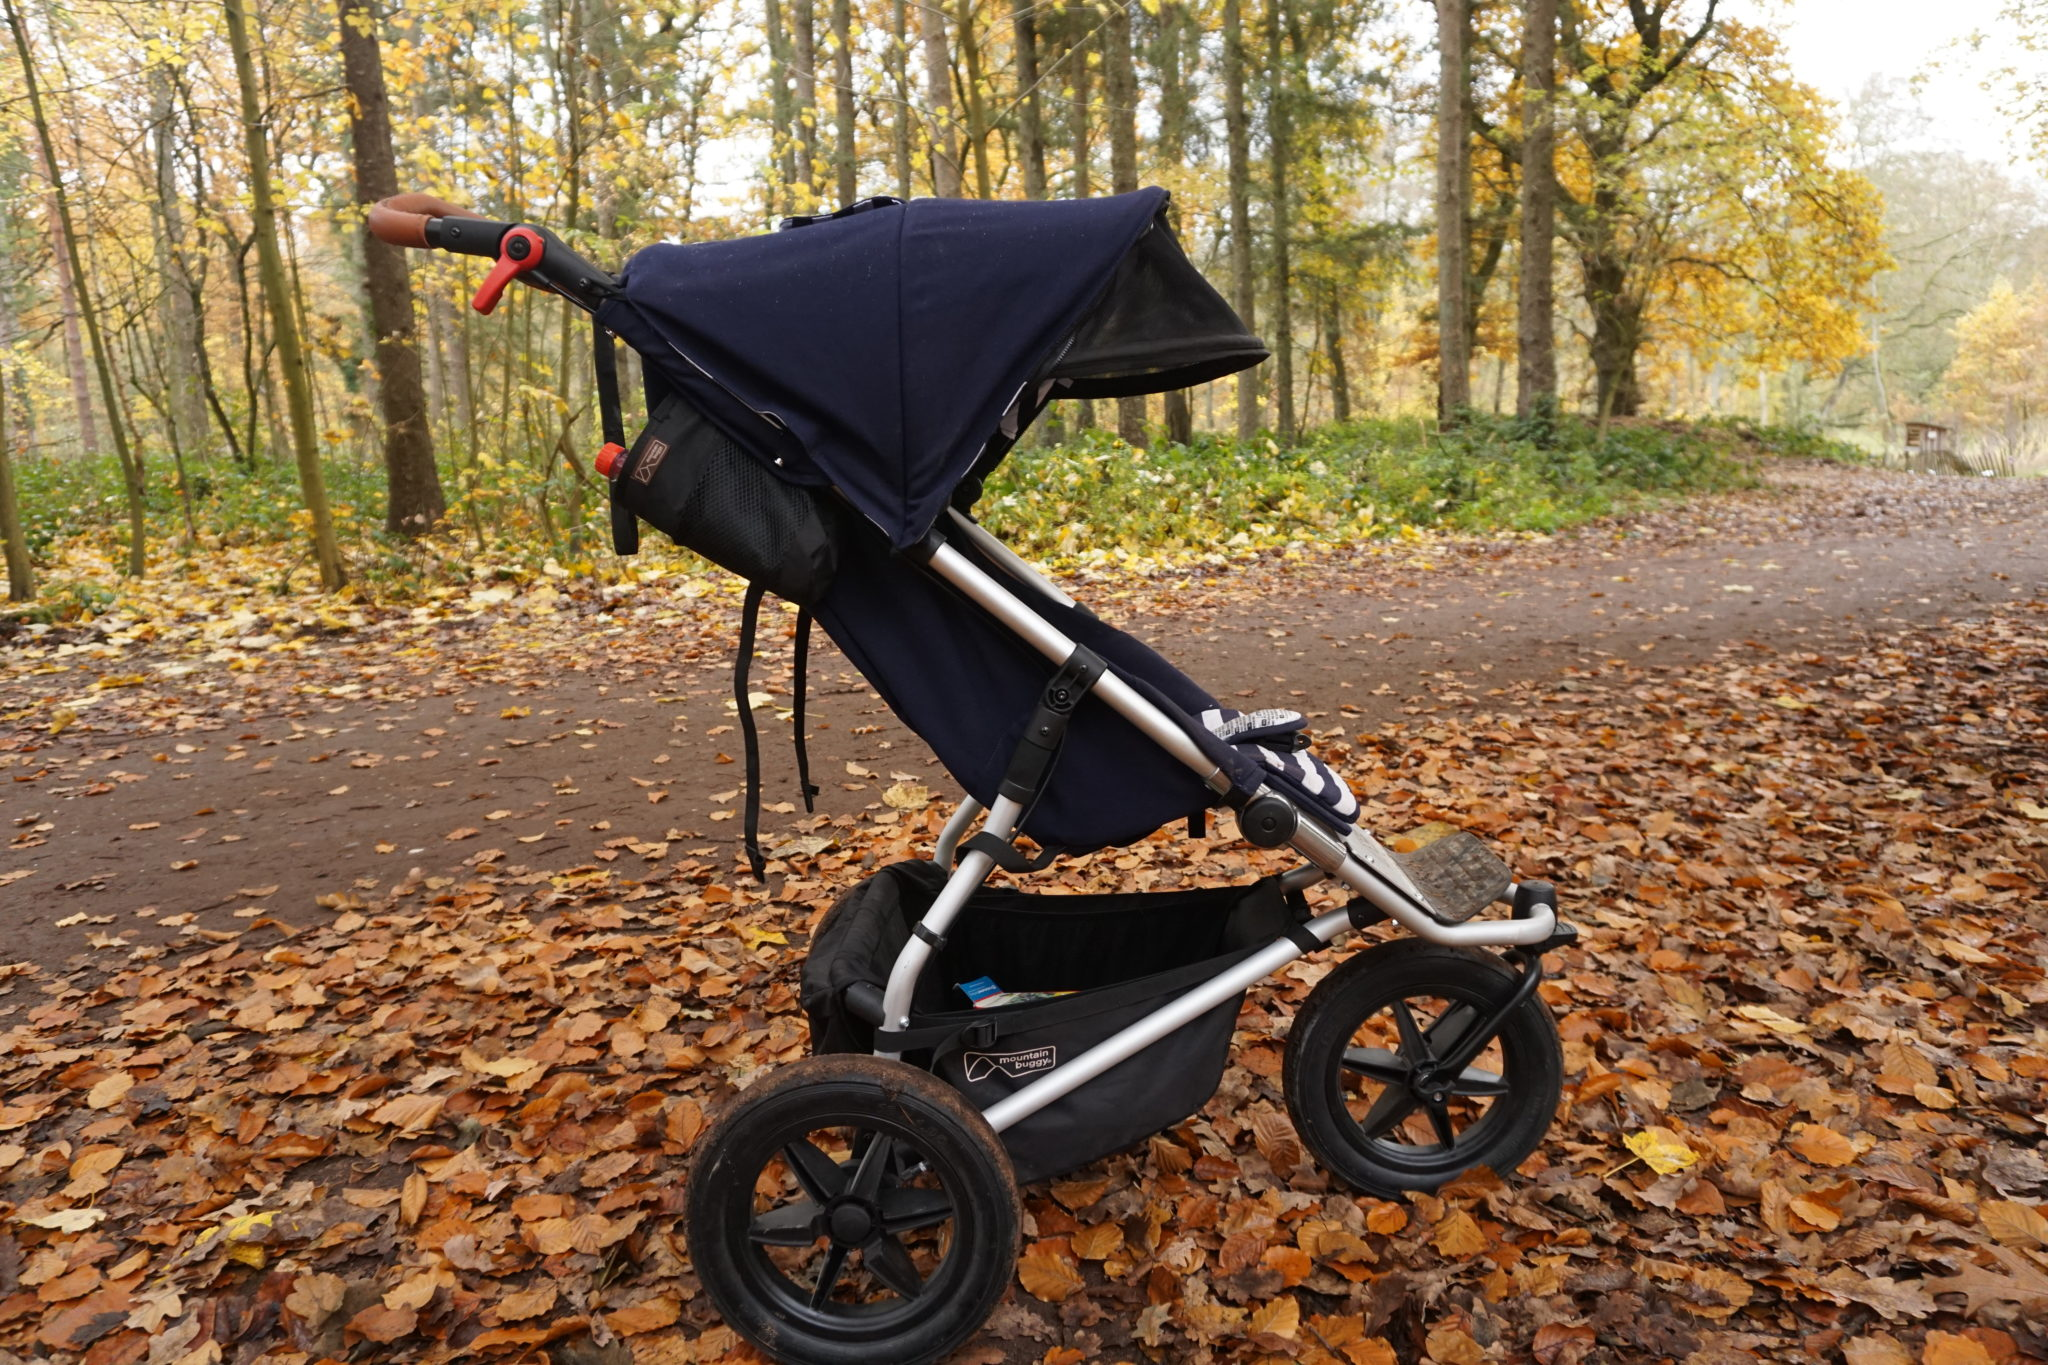 Erfahrungsbericht Mountain Buggy Urban Jungle